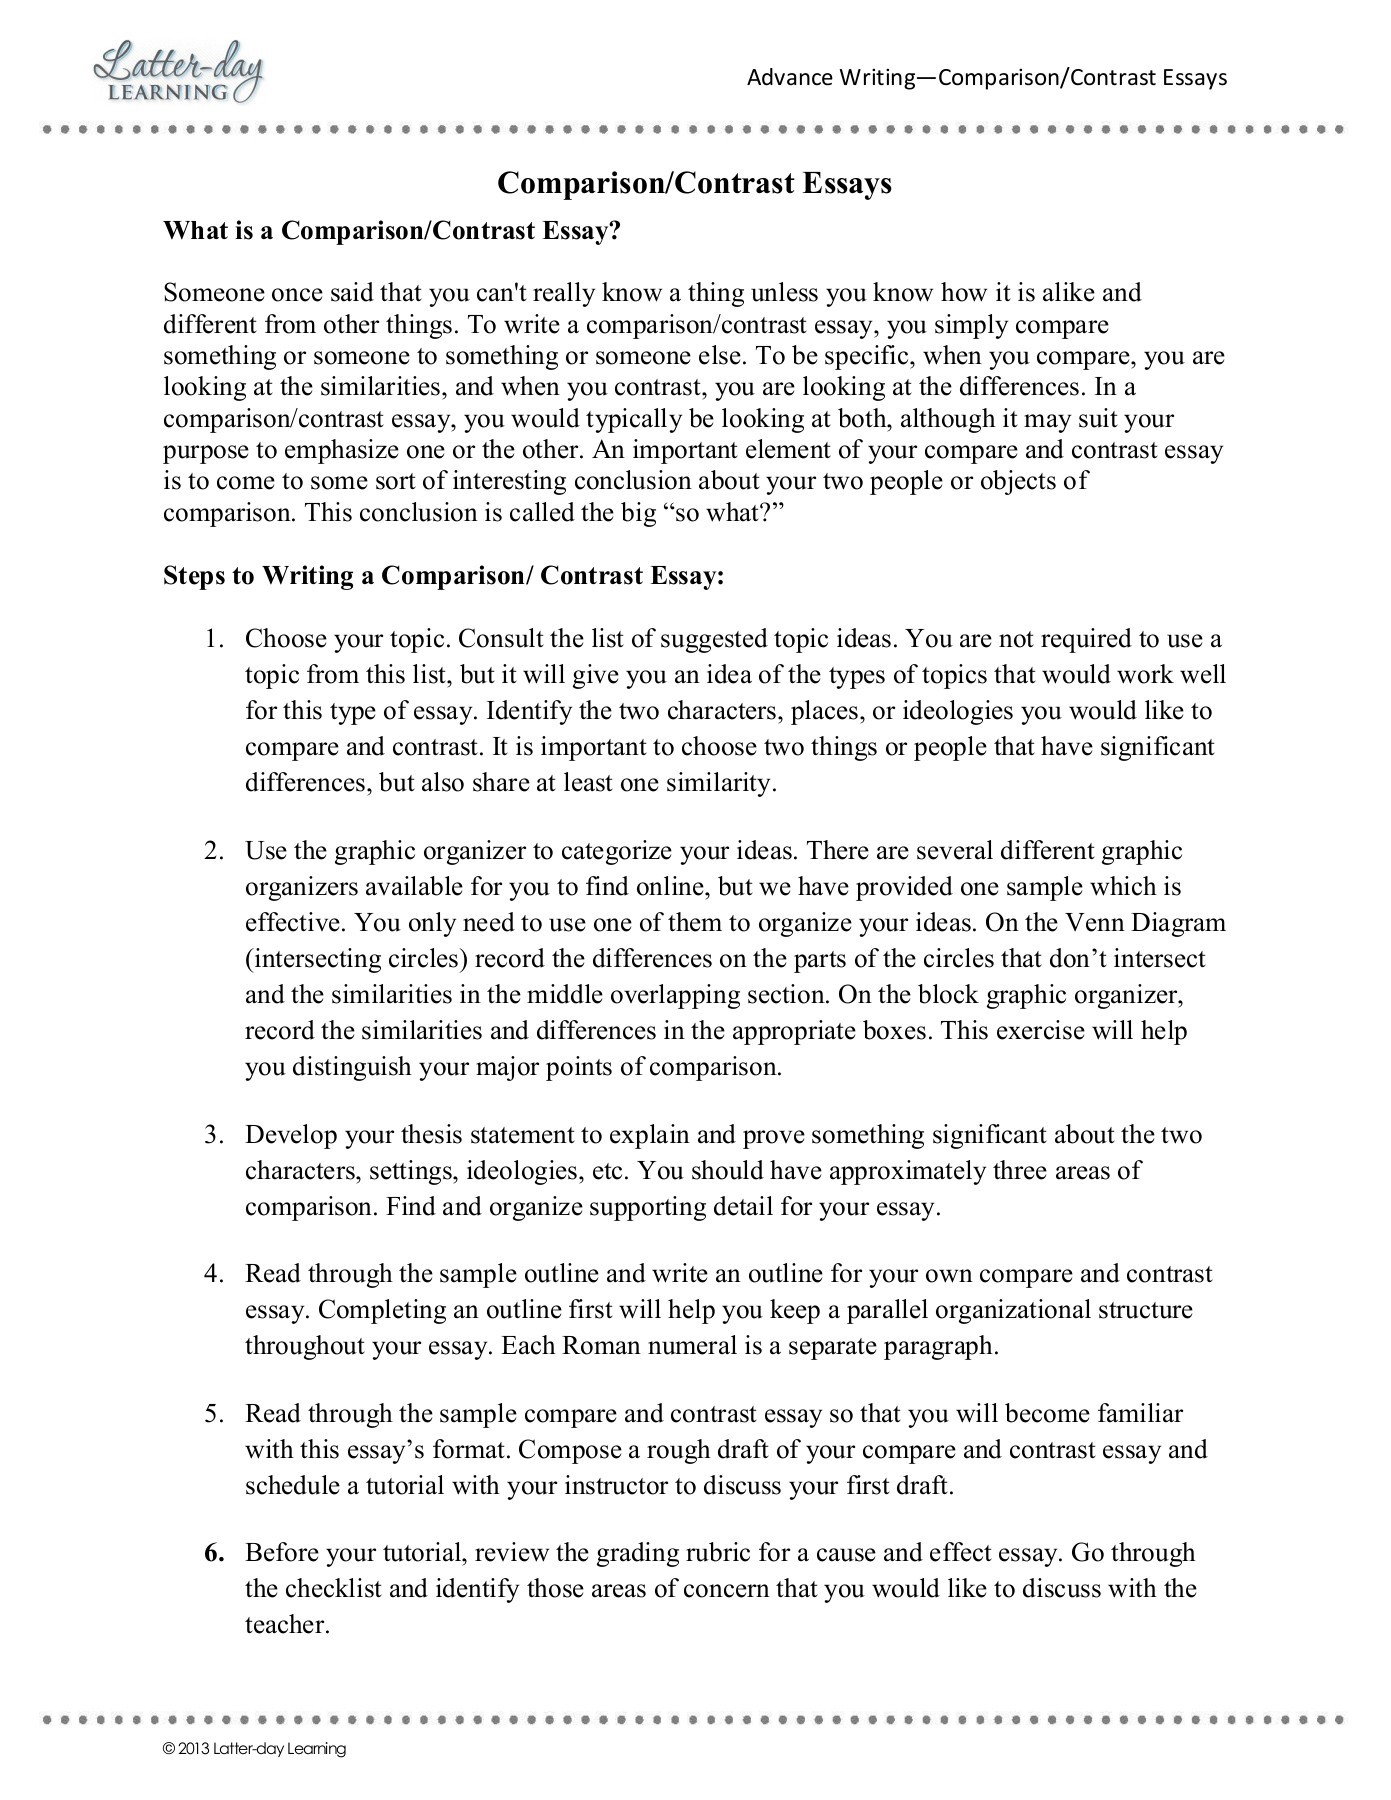 018 Essay Example Compare Contrast Best Essays Topics Technology Comparison Outline And Format Full